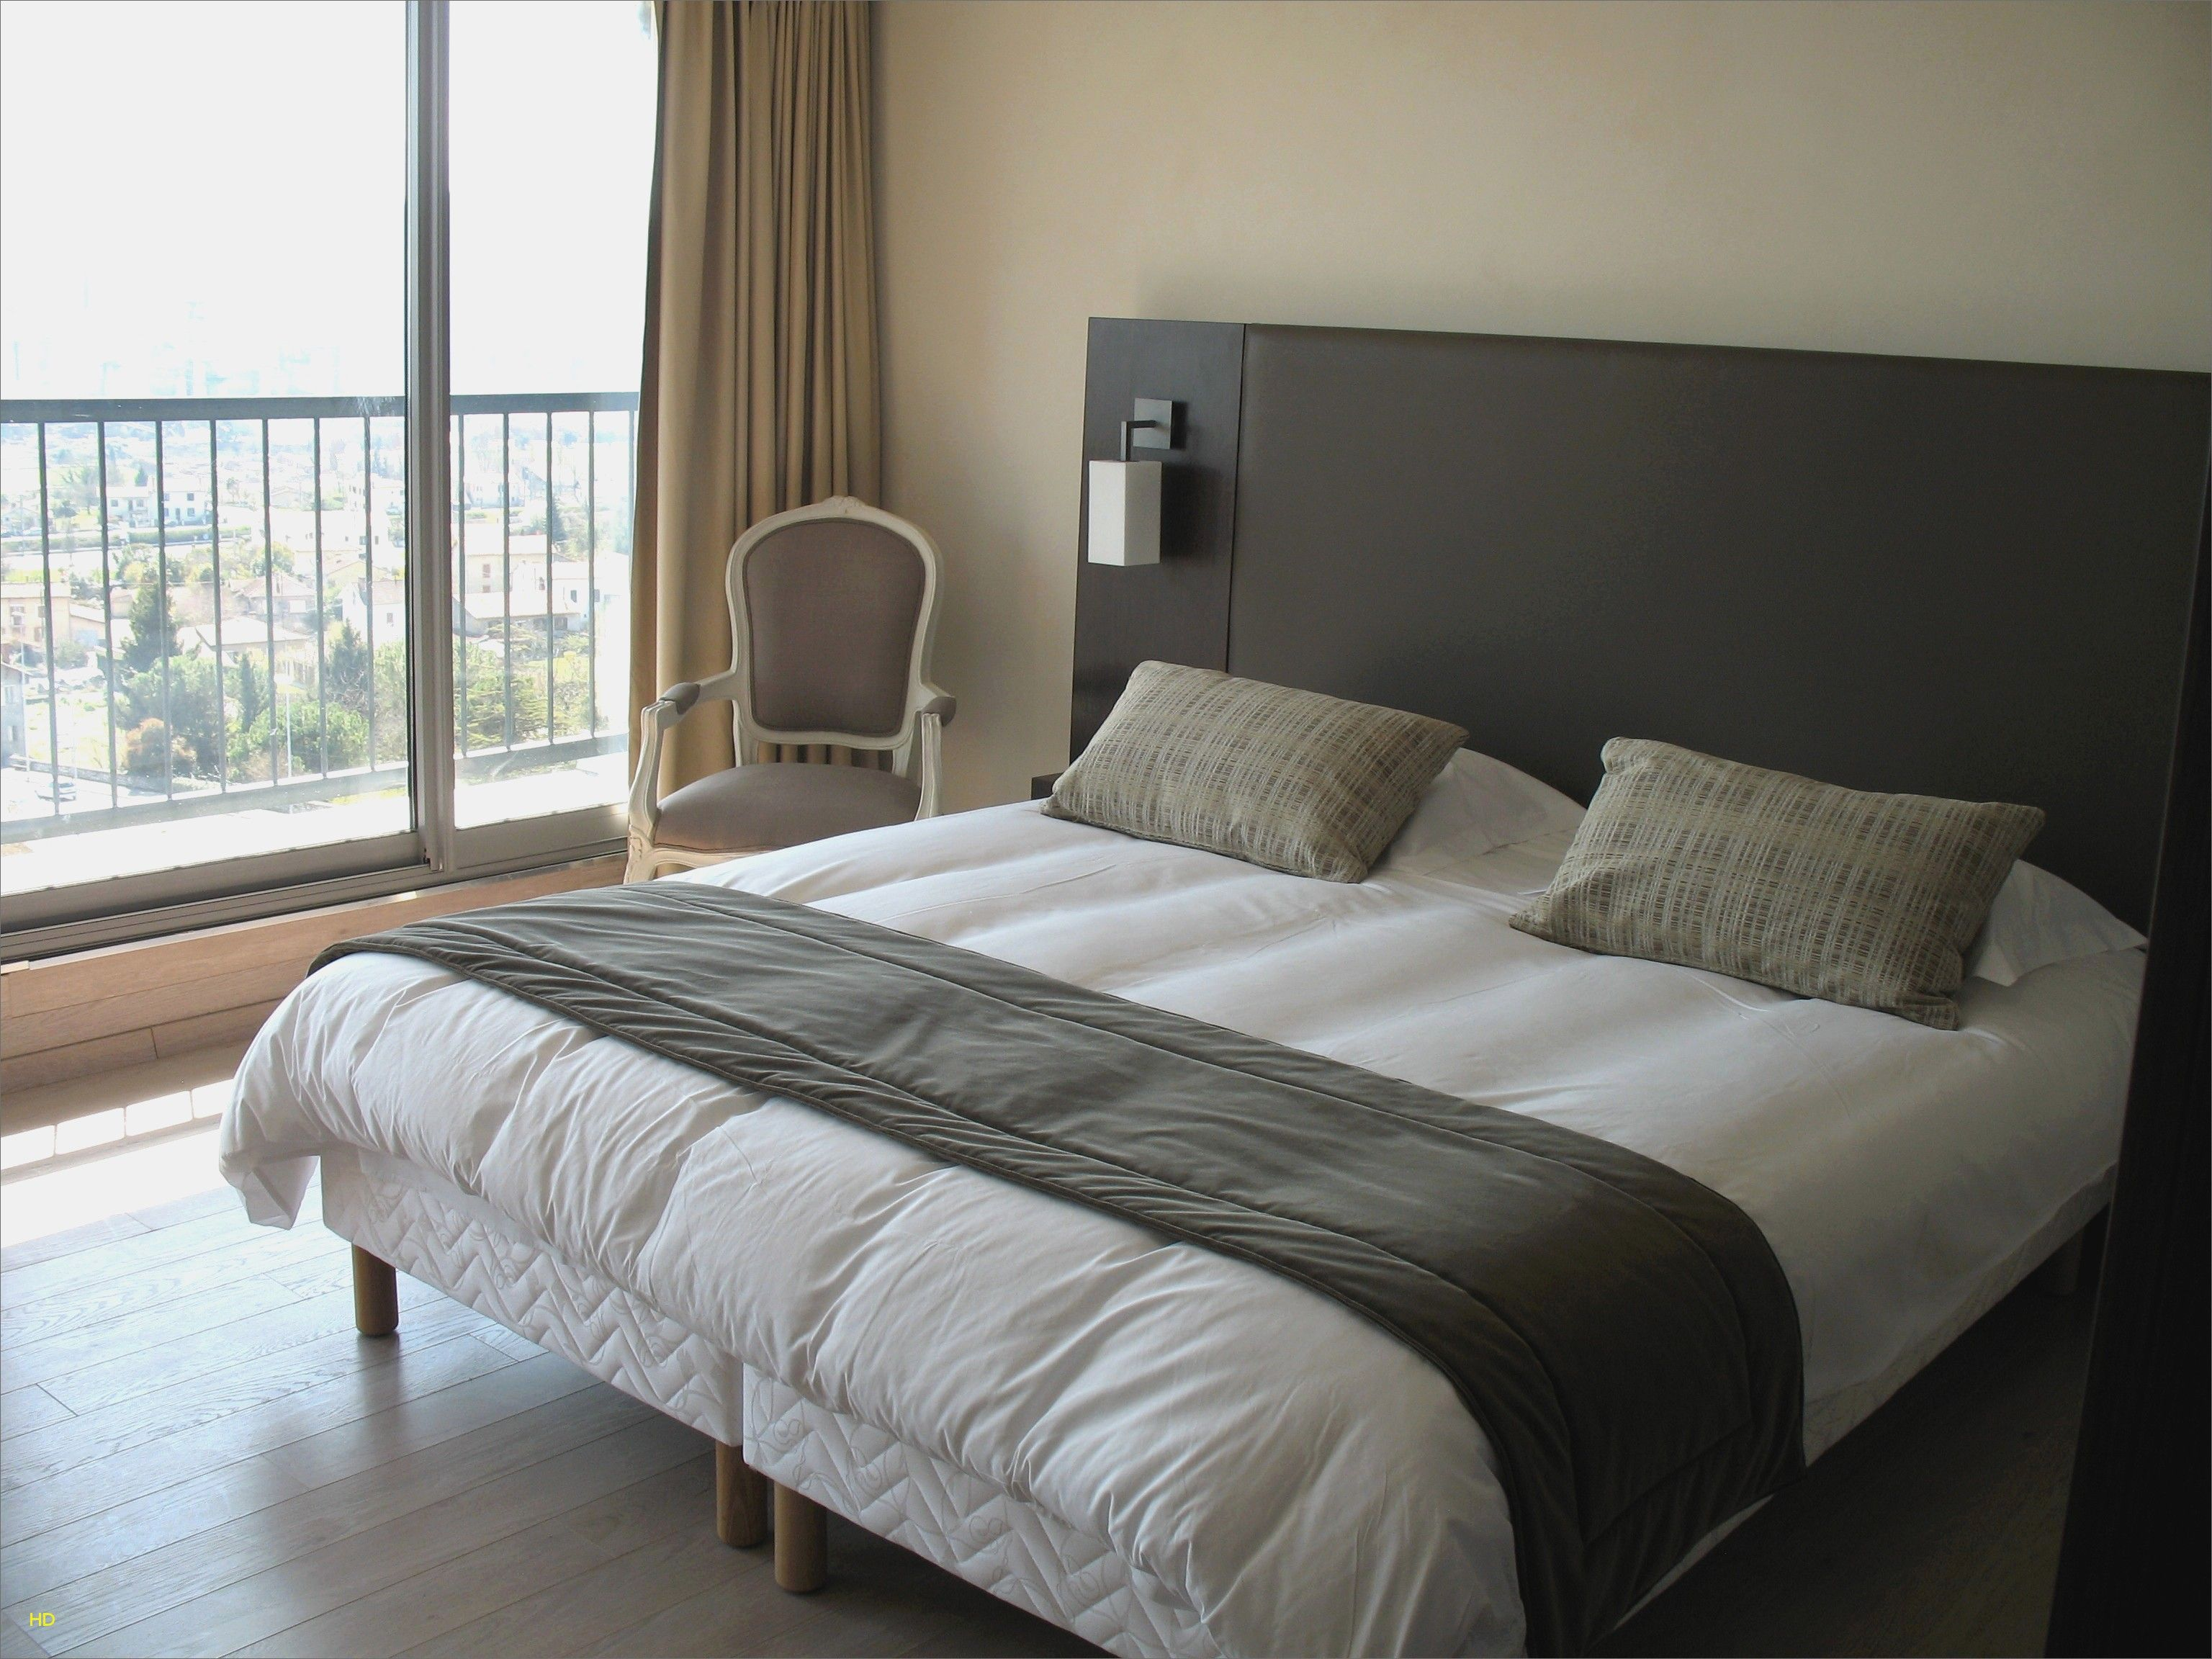 Chambre d hote region valence france chambres hotes 36 in - Chambre d hotes region parisienne ...